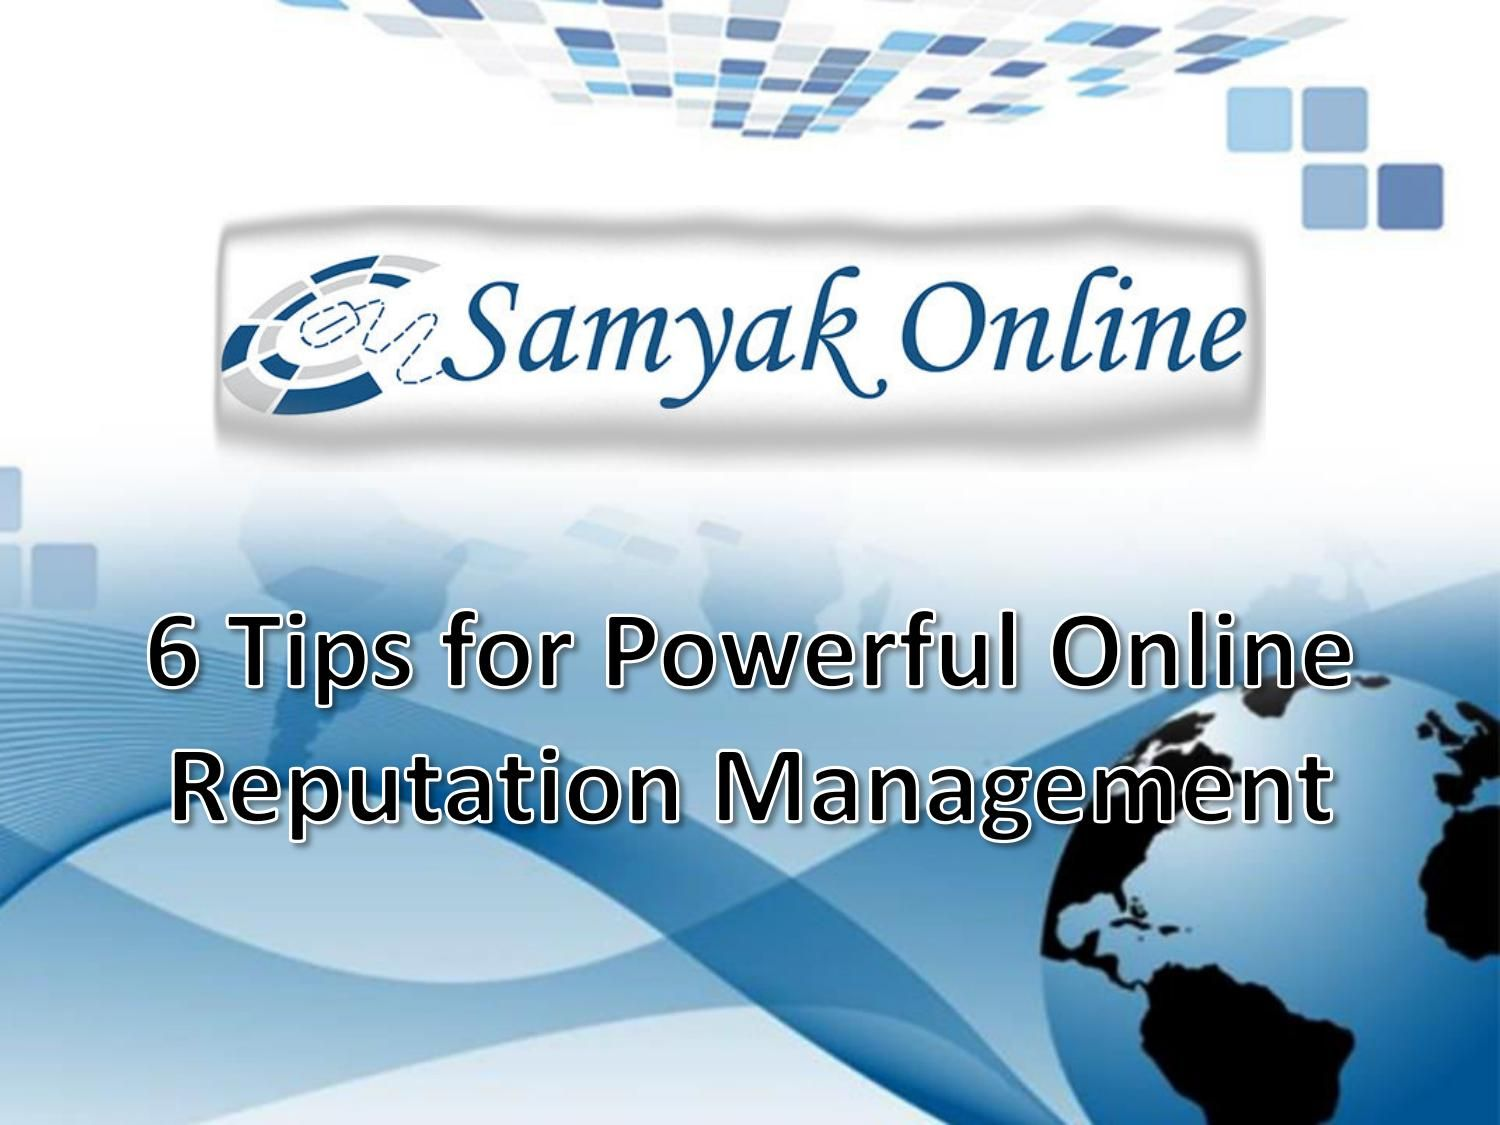 umbers of companies offer ORM services in India but you must hire the ORM experts only from the top ranking company. Samyak Online in New Delhi has years' experience in providing outstanding ORM servic